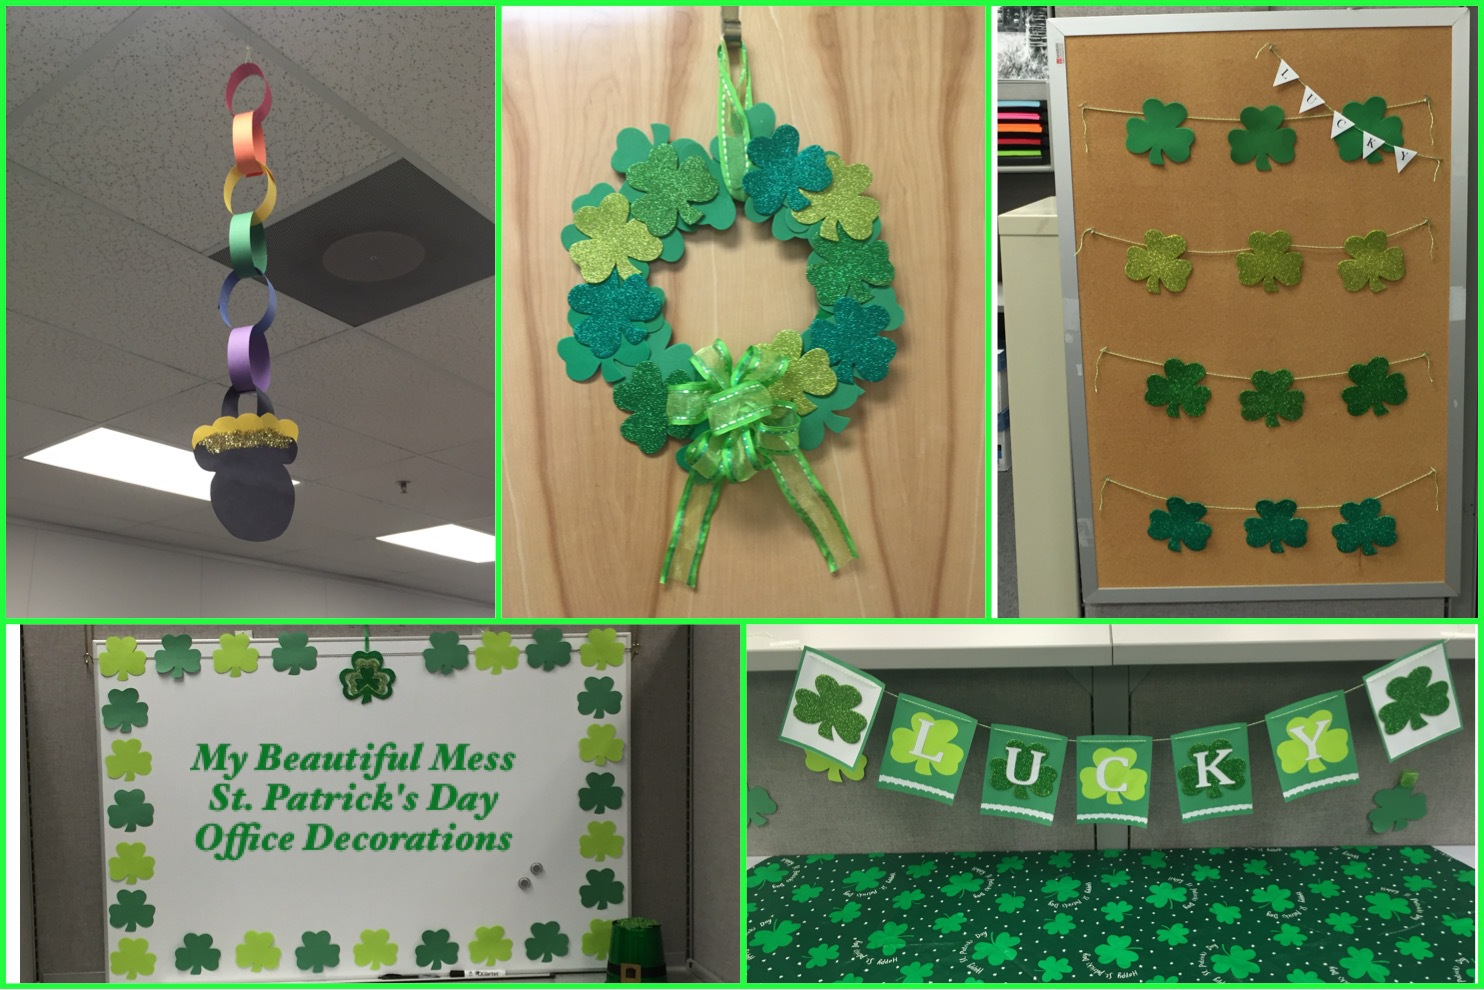 My Beautiful Mess - DIY St. Patrick's Day Office Decorations